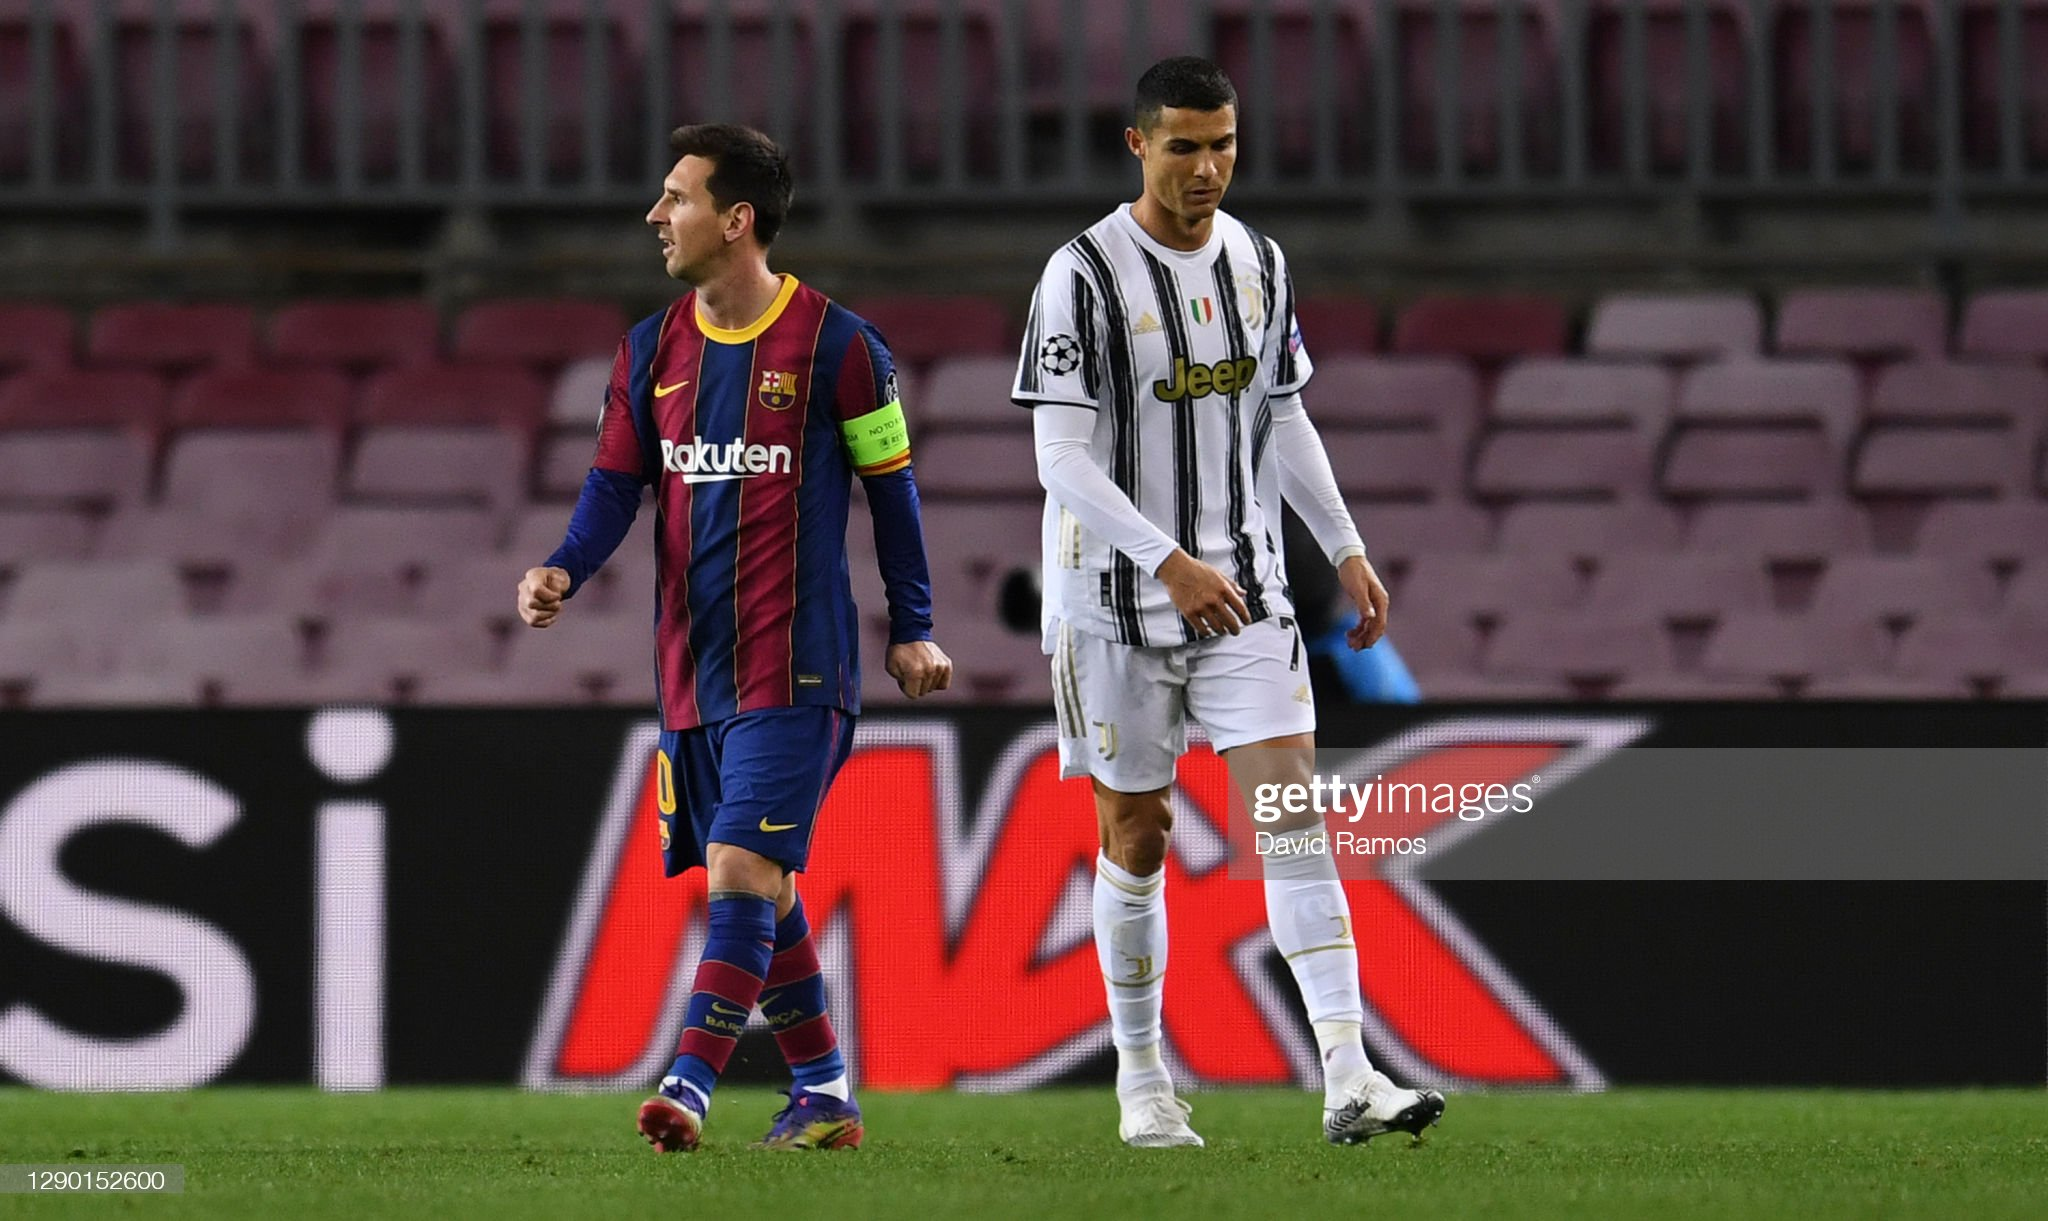 FC Barcelona v Juventus: Group G - UEFA Champions League : News Photo